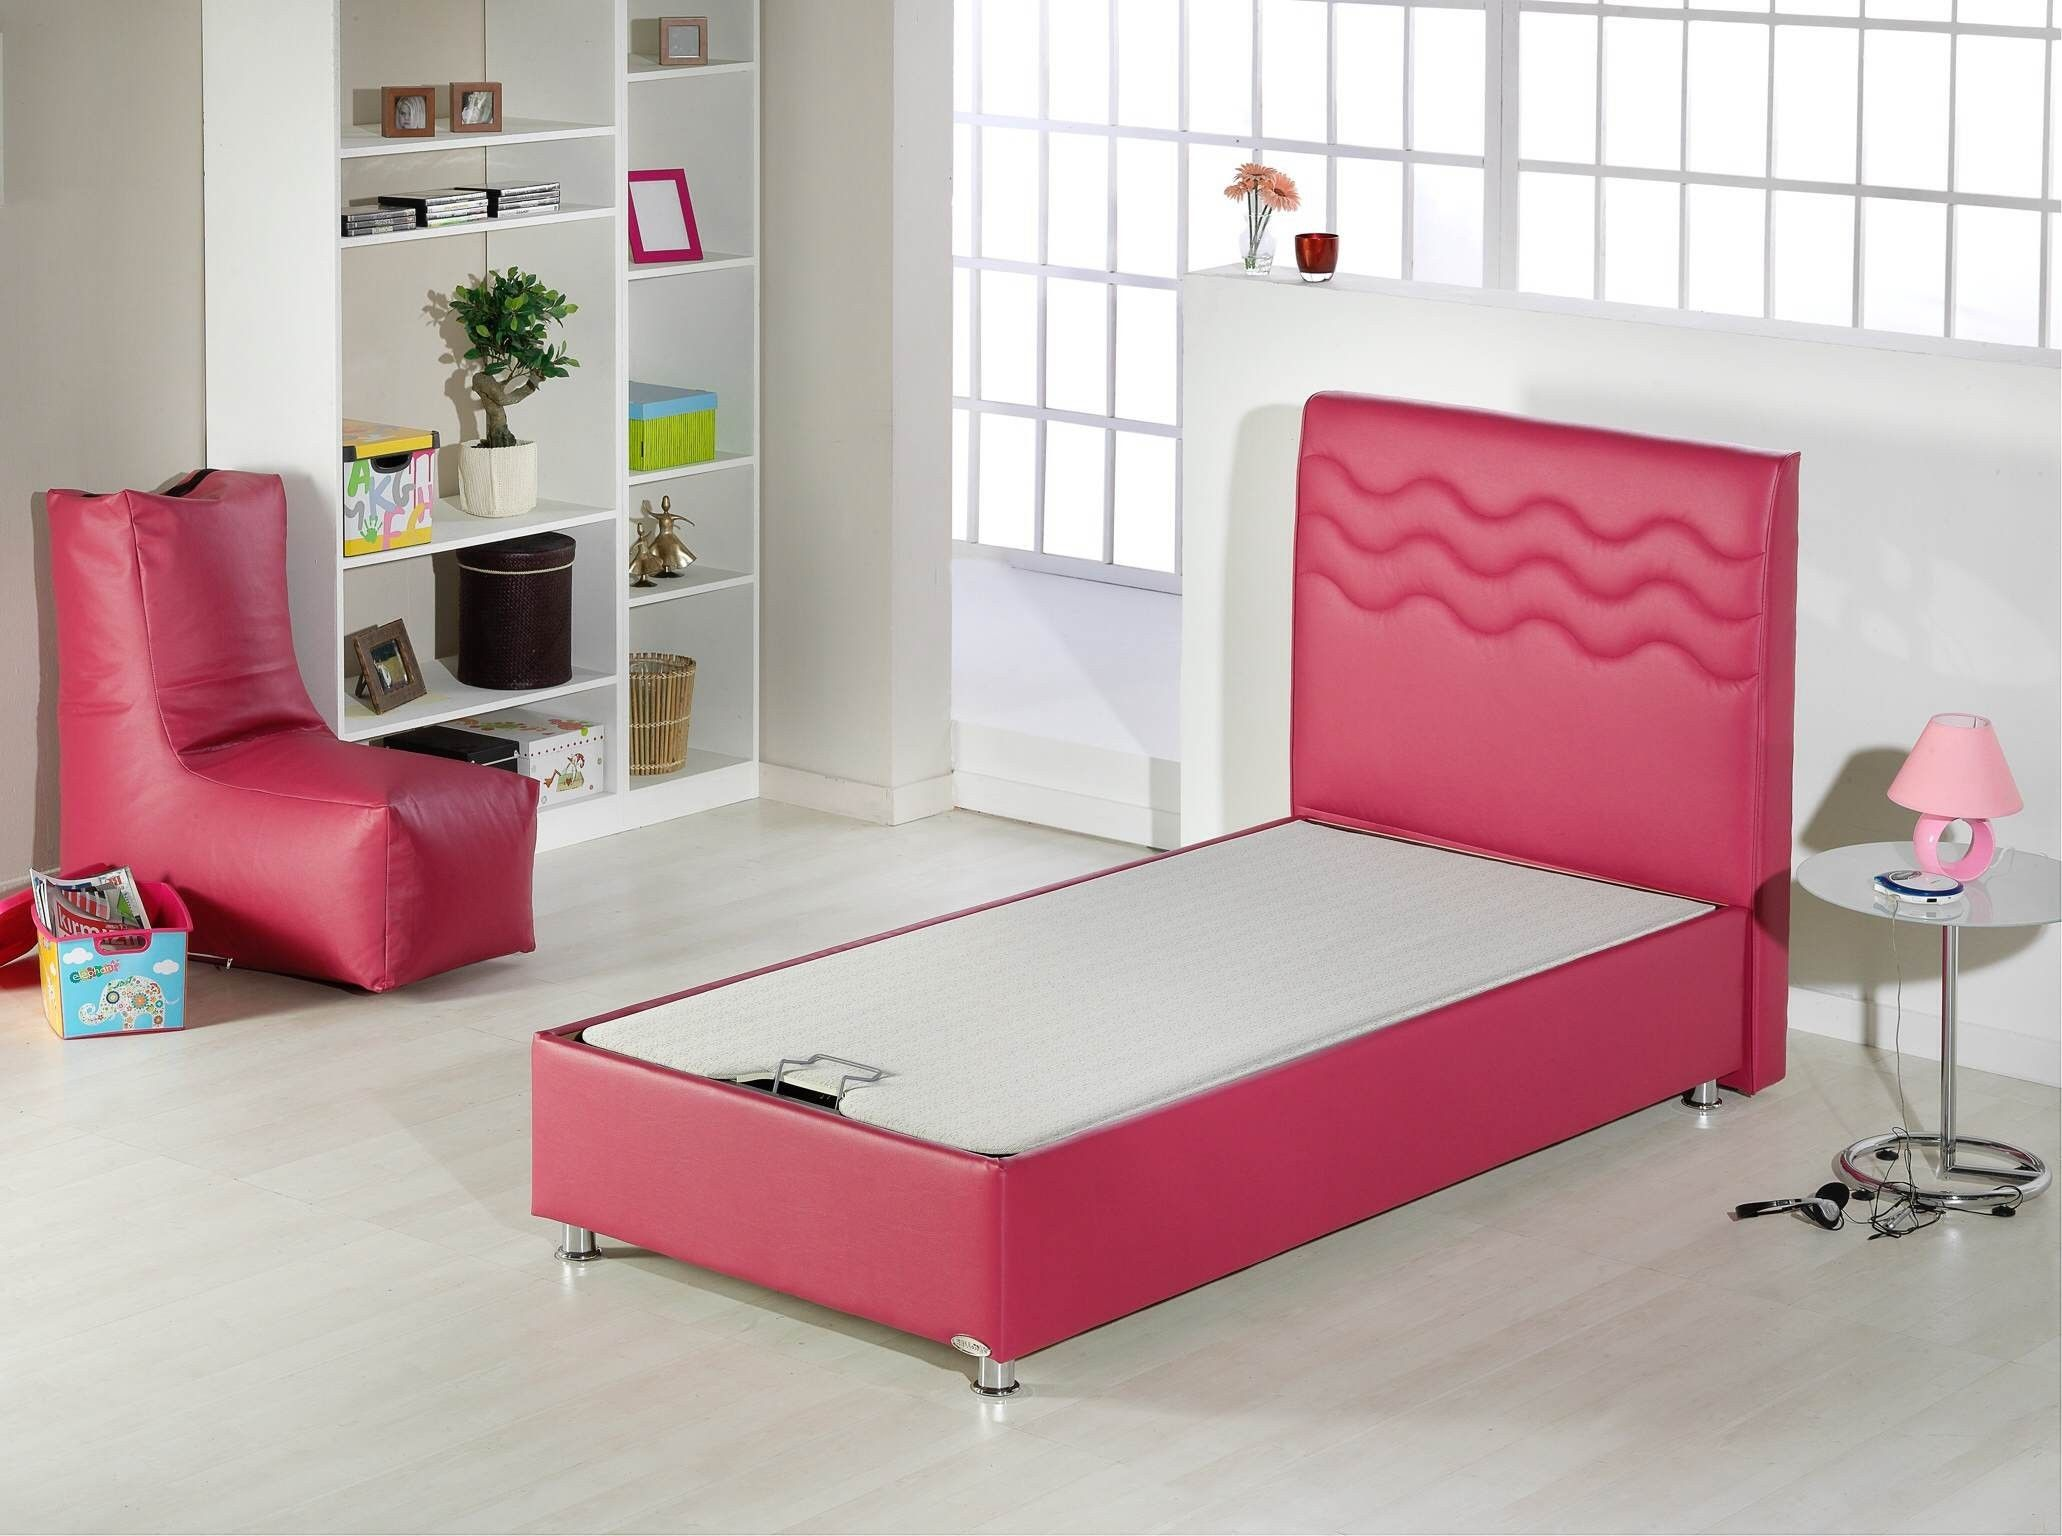 Furniture Bedroom Extra Long Pink Upholstered Bed Frame Mixed White ...